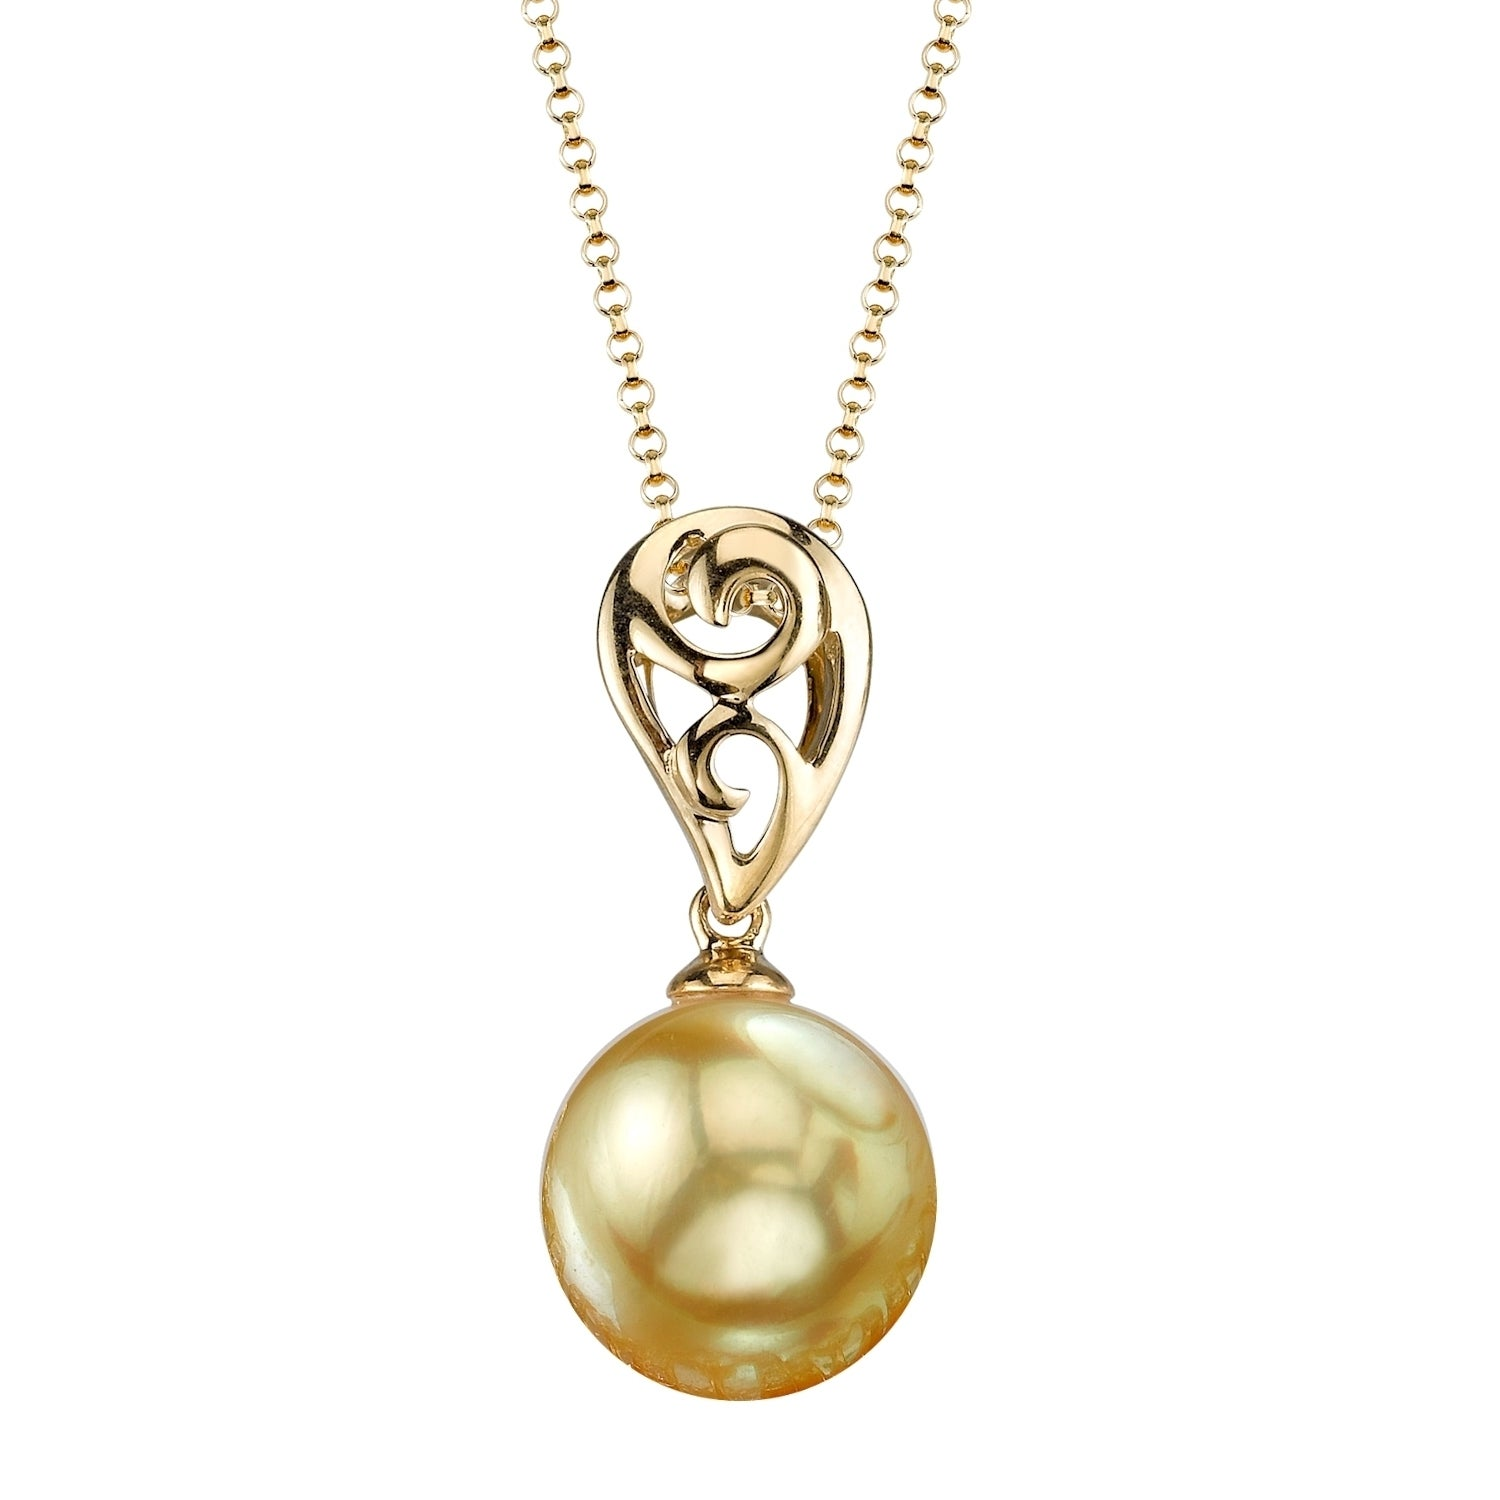 Shop radiance pearl 18k yellow gold golden south sea pearl pendant shop radiance pearl 18k yellow gold golden south sea pearl pendant 9 10mm 10 11 mm on sale free shipping today overstock 10546483 aloadofball Gallery